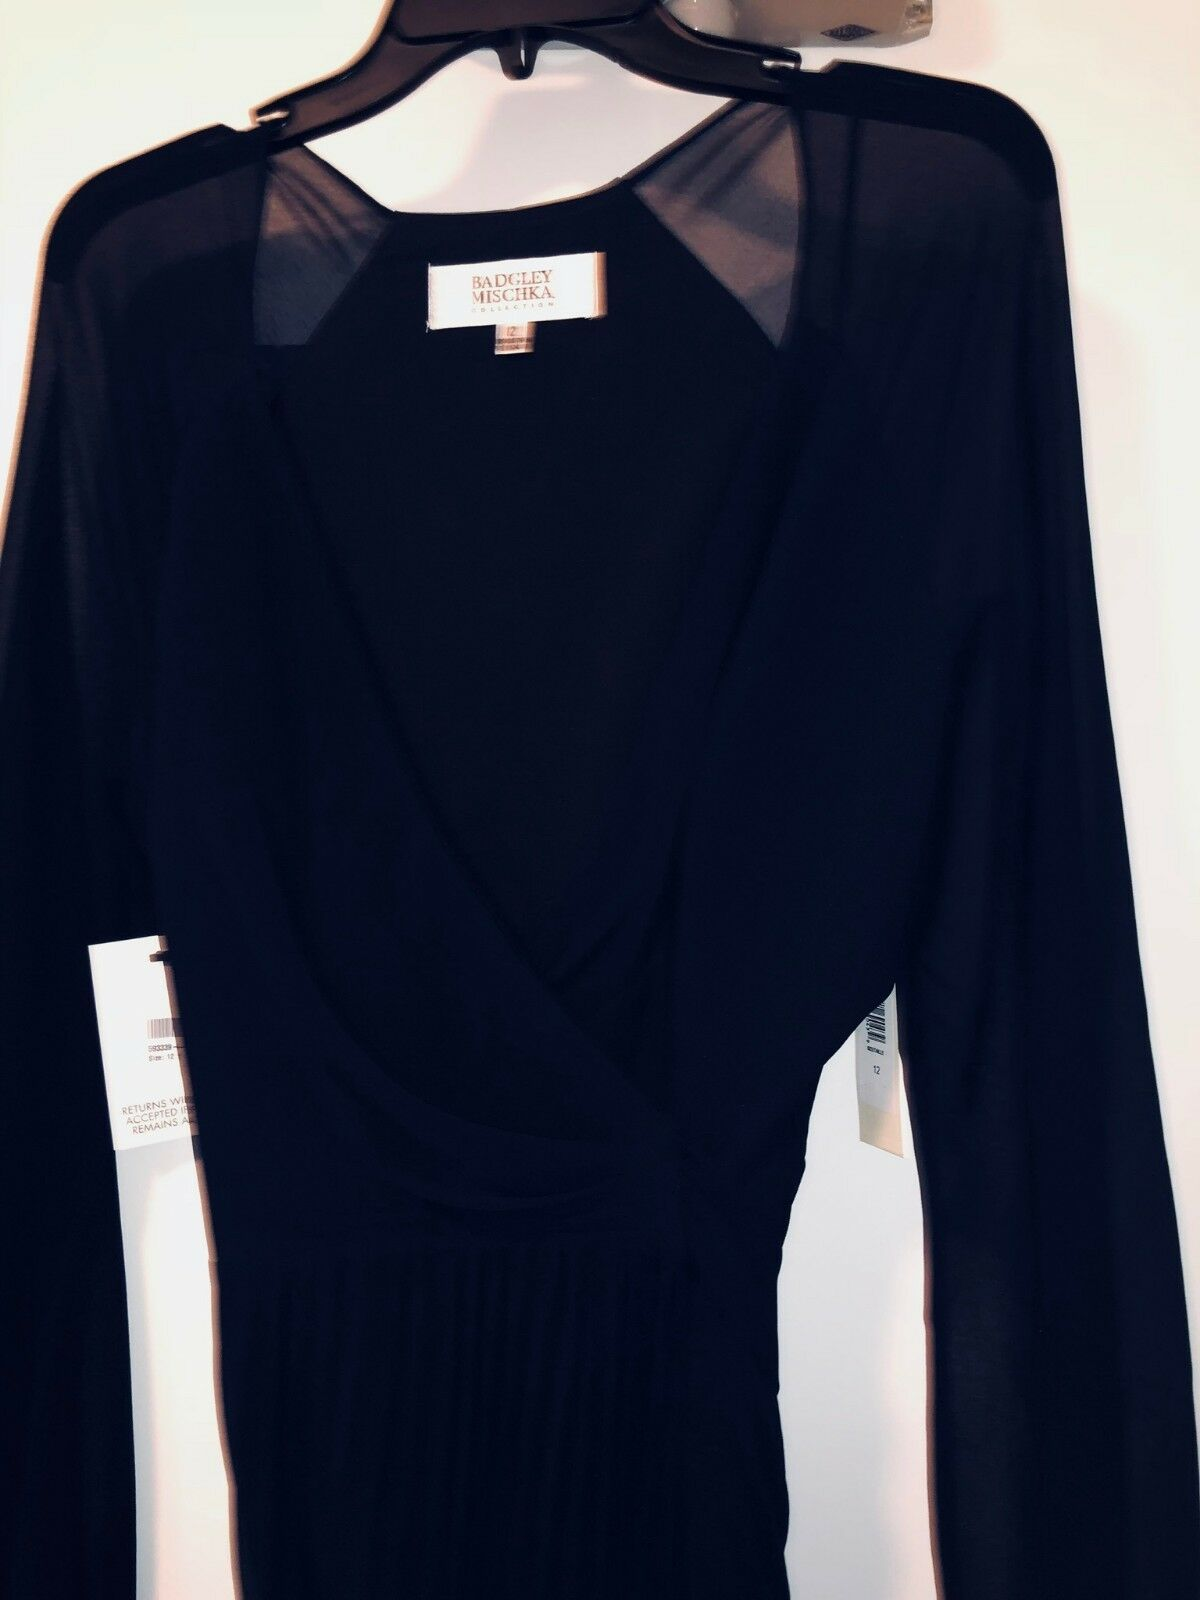 BAGDLEY MISCHKA PLEATED WRAP GOWN NAVY NAVY NAVY SIZE US12 UK16 e93635